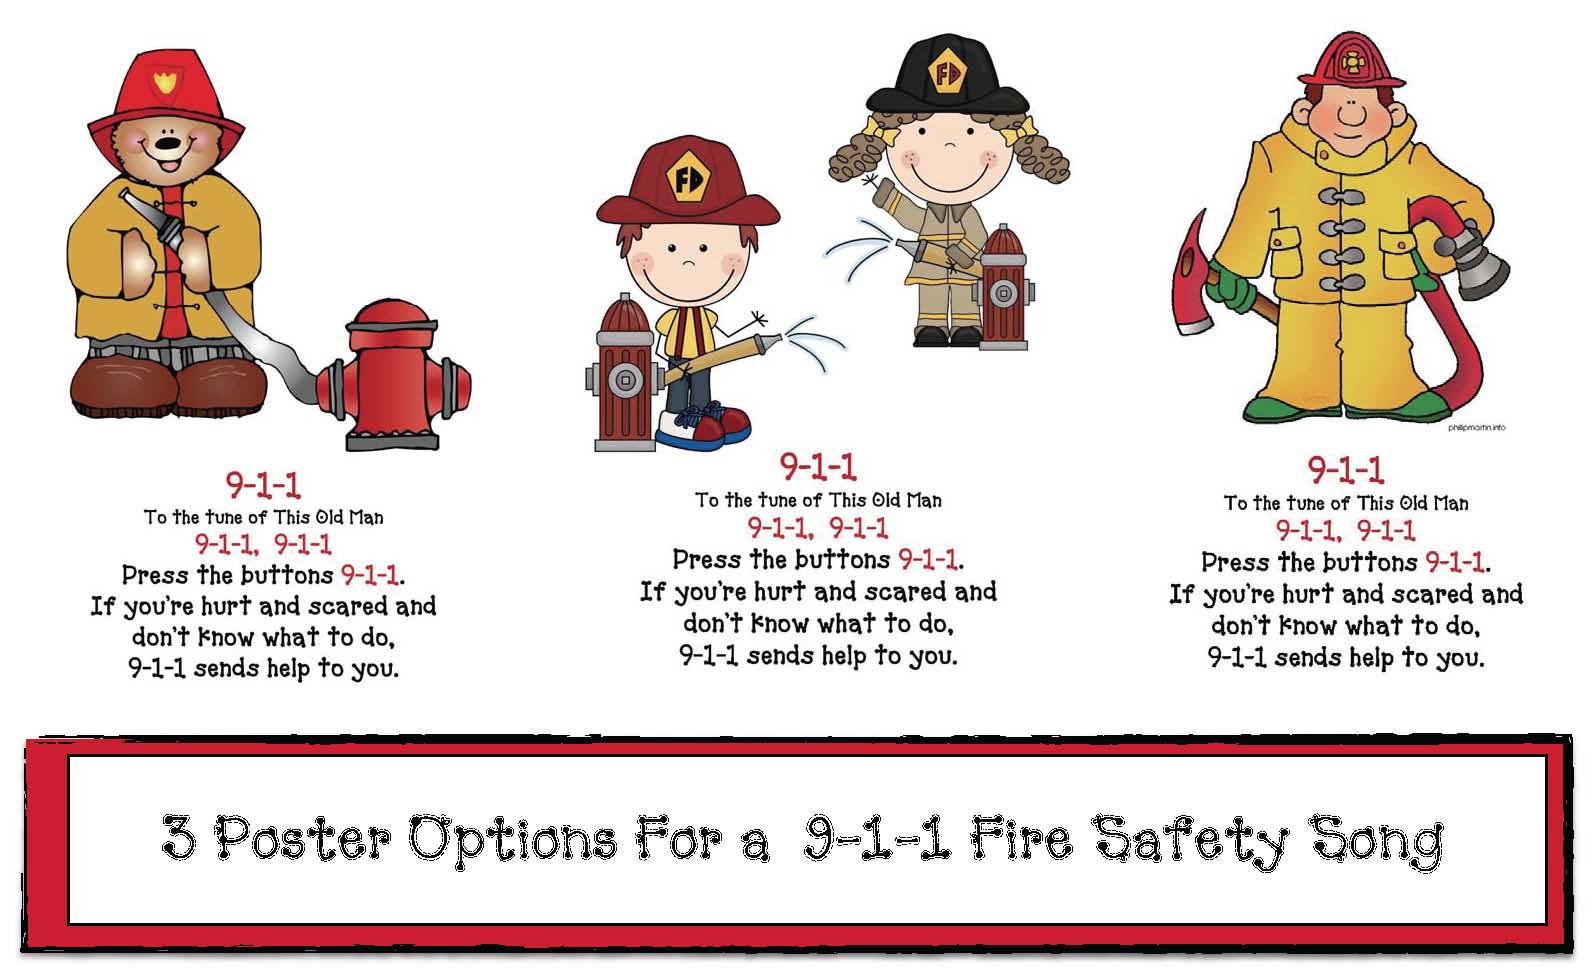 fire safety activities, fire safety crafts, fire safety songs, 911 activities, 911 songs, fire safety writing prompts, good and bad fires, fire safety rules, fire safety posters, fire safety bulletin boards, end punctuation activities